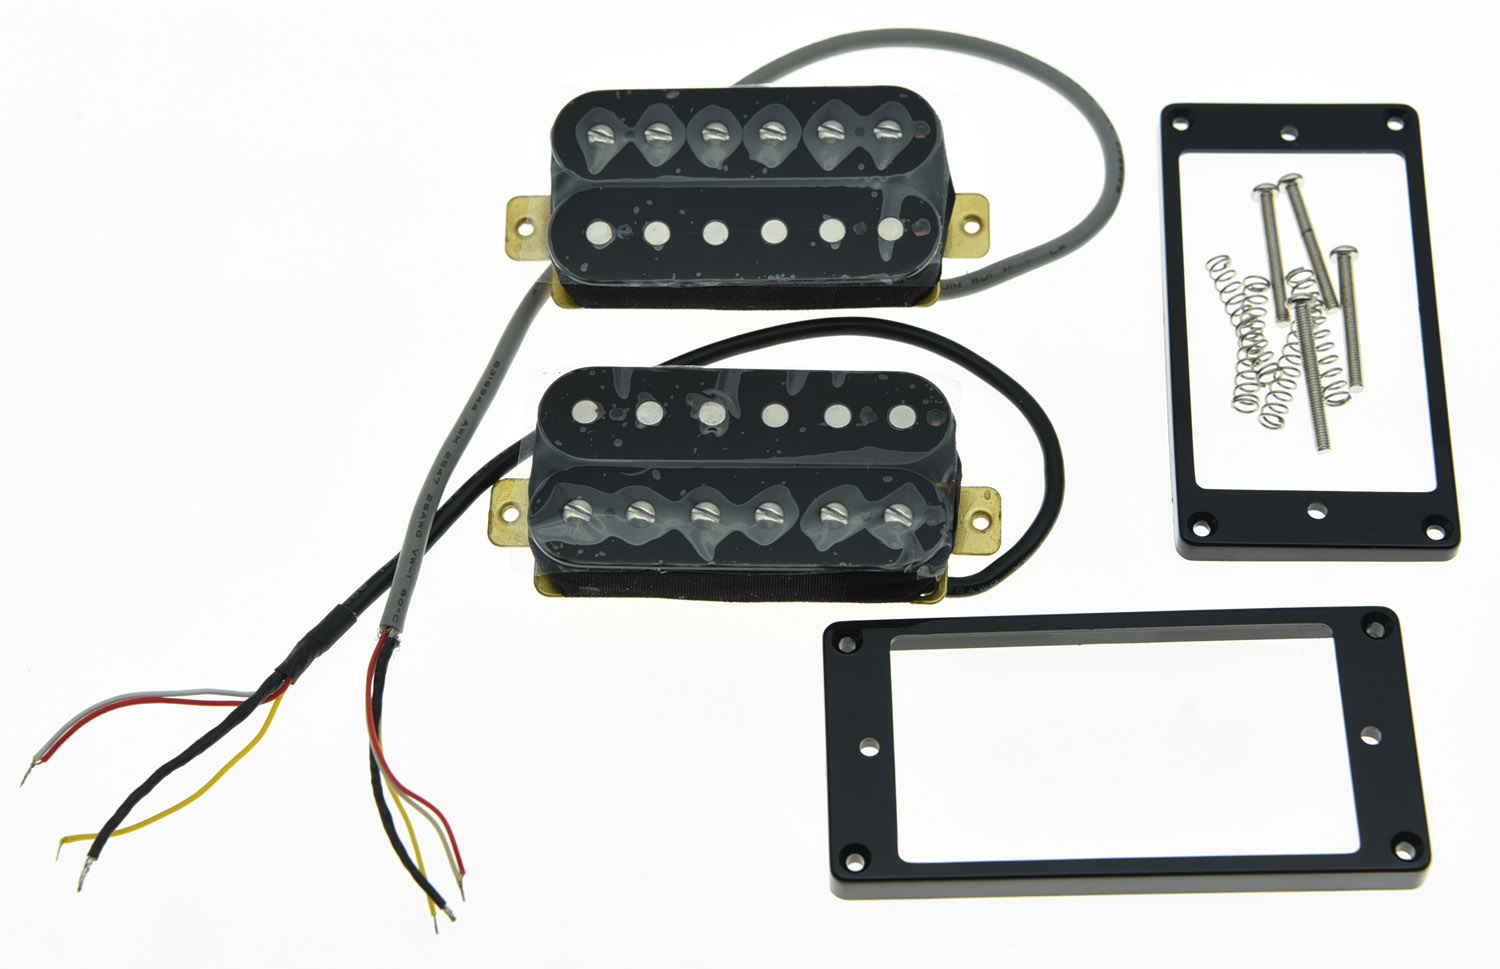 Set of 2 Black 50's Vintage Sound Pickups Alnico V Humbucker Neck&Bridge Pickup new humbucker pickup set gold four conductor wires alnico v pickups